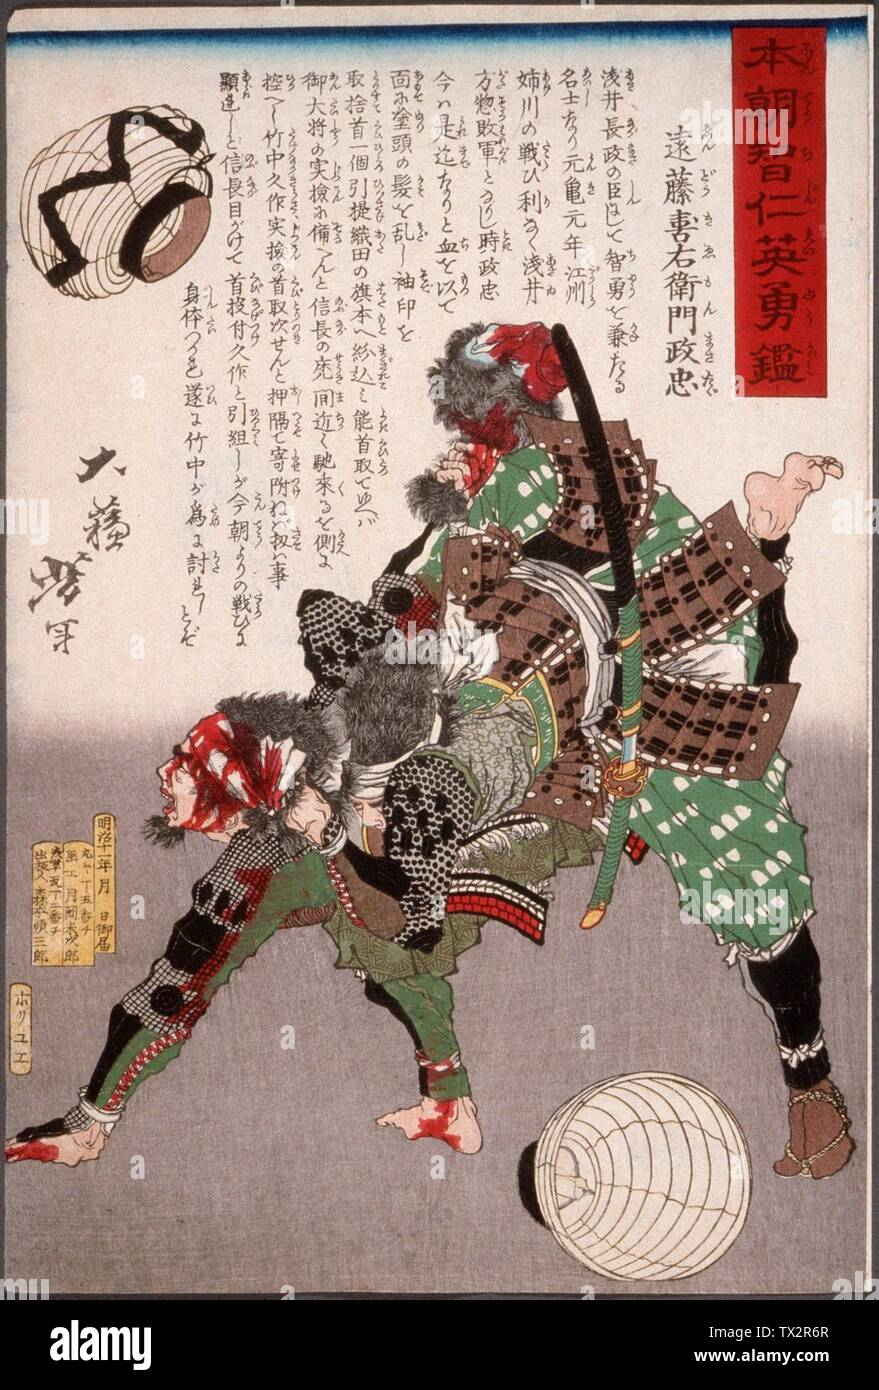 'Endō Kiemon Masatada with Assailant; English:  Japan, 1878 Series: A Mirror of Wisdom, Benevolence, and Valor in Japan Prints; woodcuts Color woodblock print Herbert R. Cole Collection (M.84.31.267) Japanese Art; 1878date QS:P571,+1878-00-00T00:00:00Z/9; ' - Stock Image